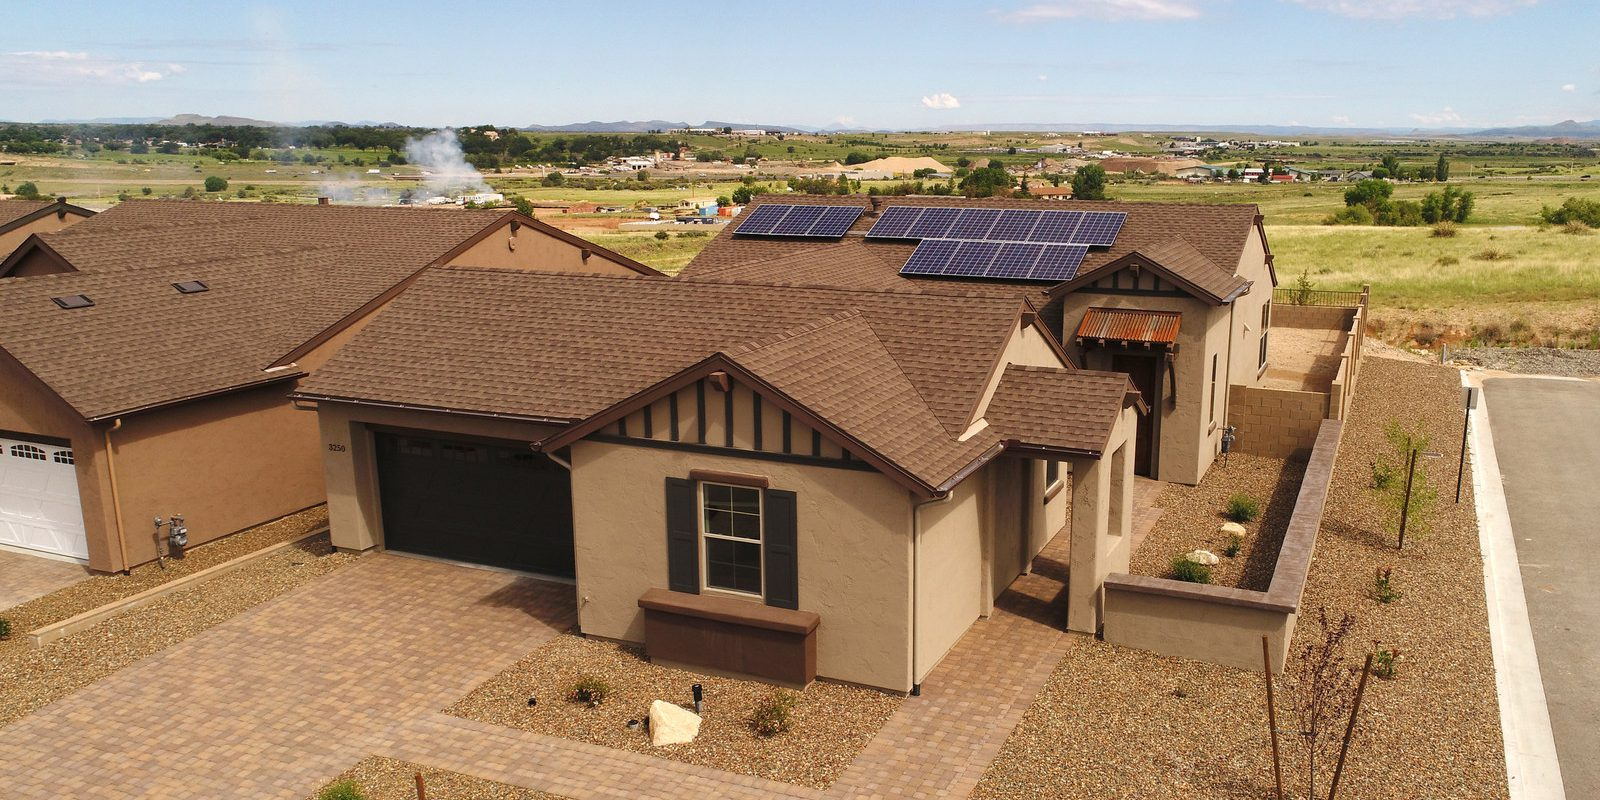 EGEB: Nearly half of US homeowners want rooftop solar